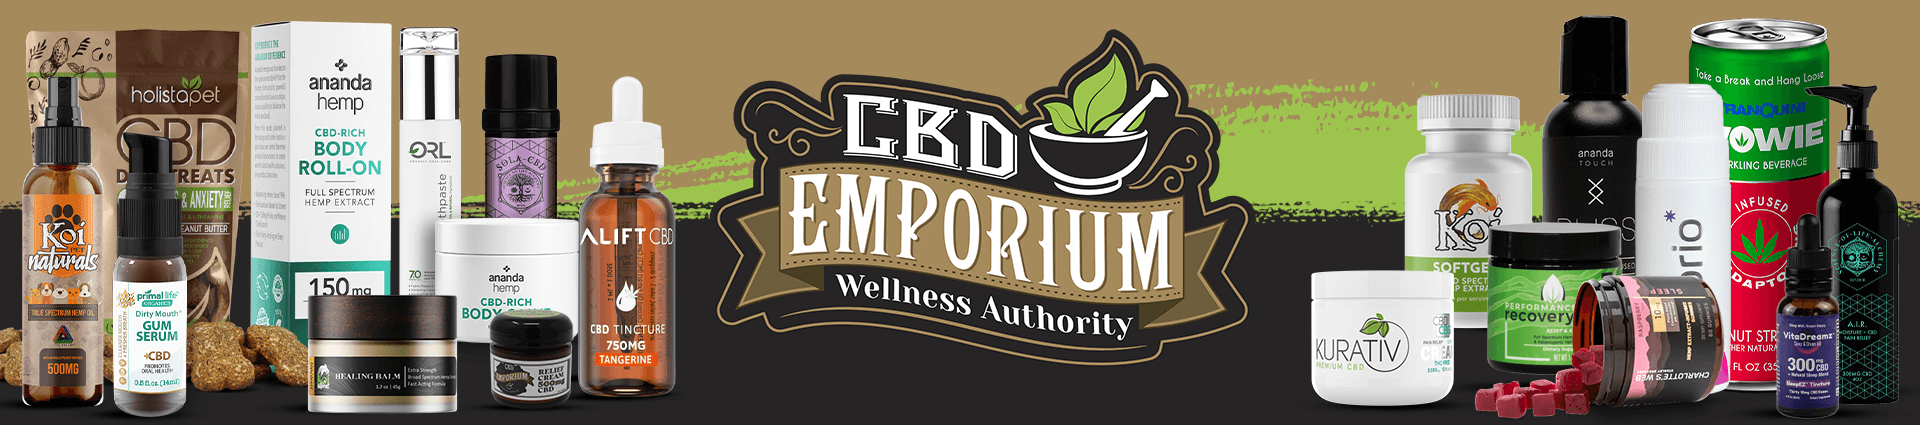 CBD Emporium Collage of Products